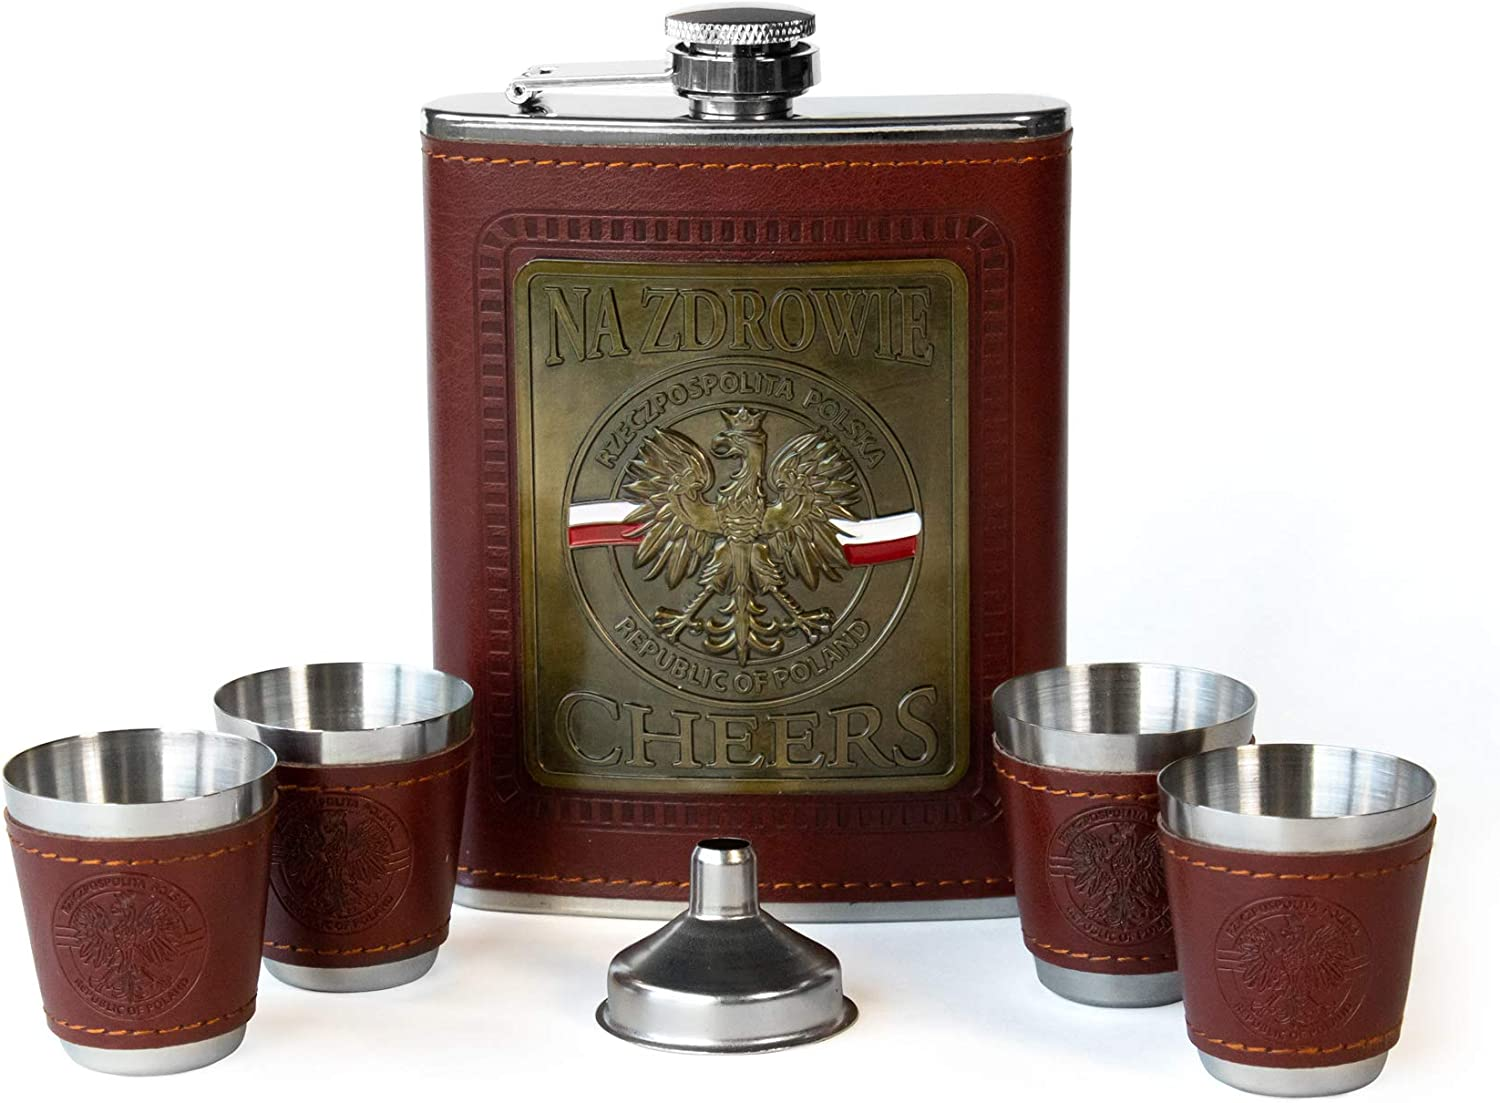 Polart - Stainless Steel Gift Boxed set of Na Zdrowie - Cheers Republic of Poland (Rzeczpospolita Polska) Polish Flask and Four Shot Glasses with the Funnel, Flask Sets for Men